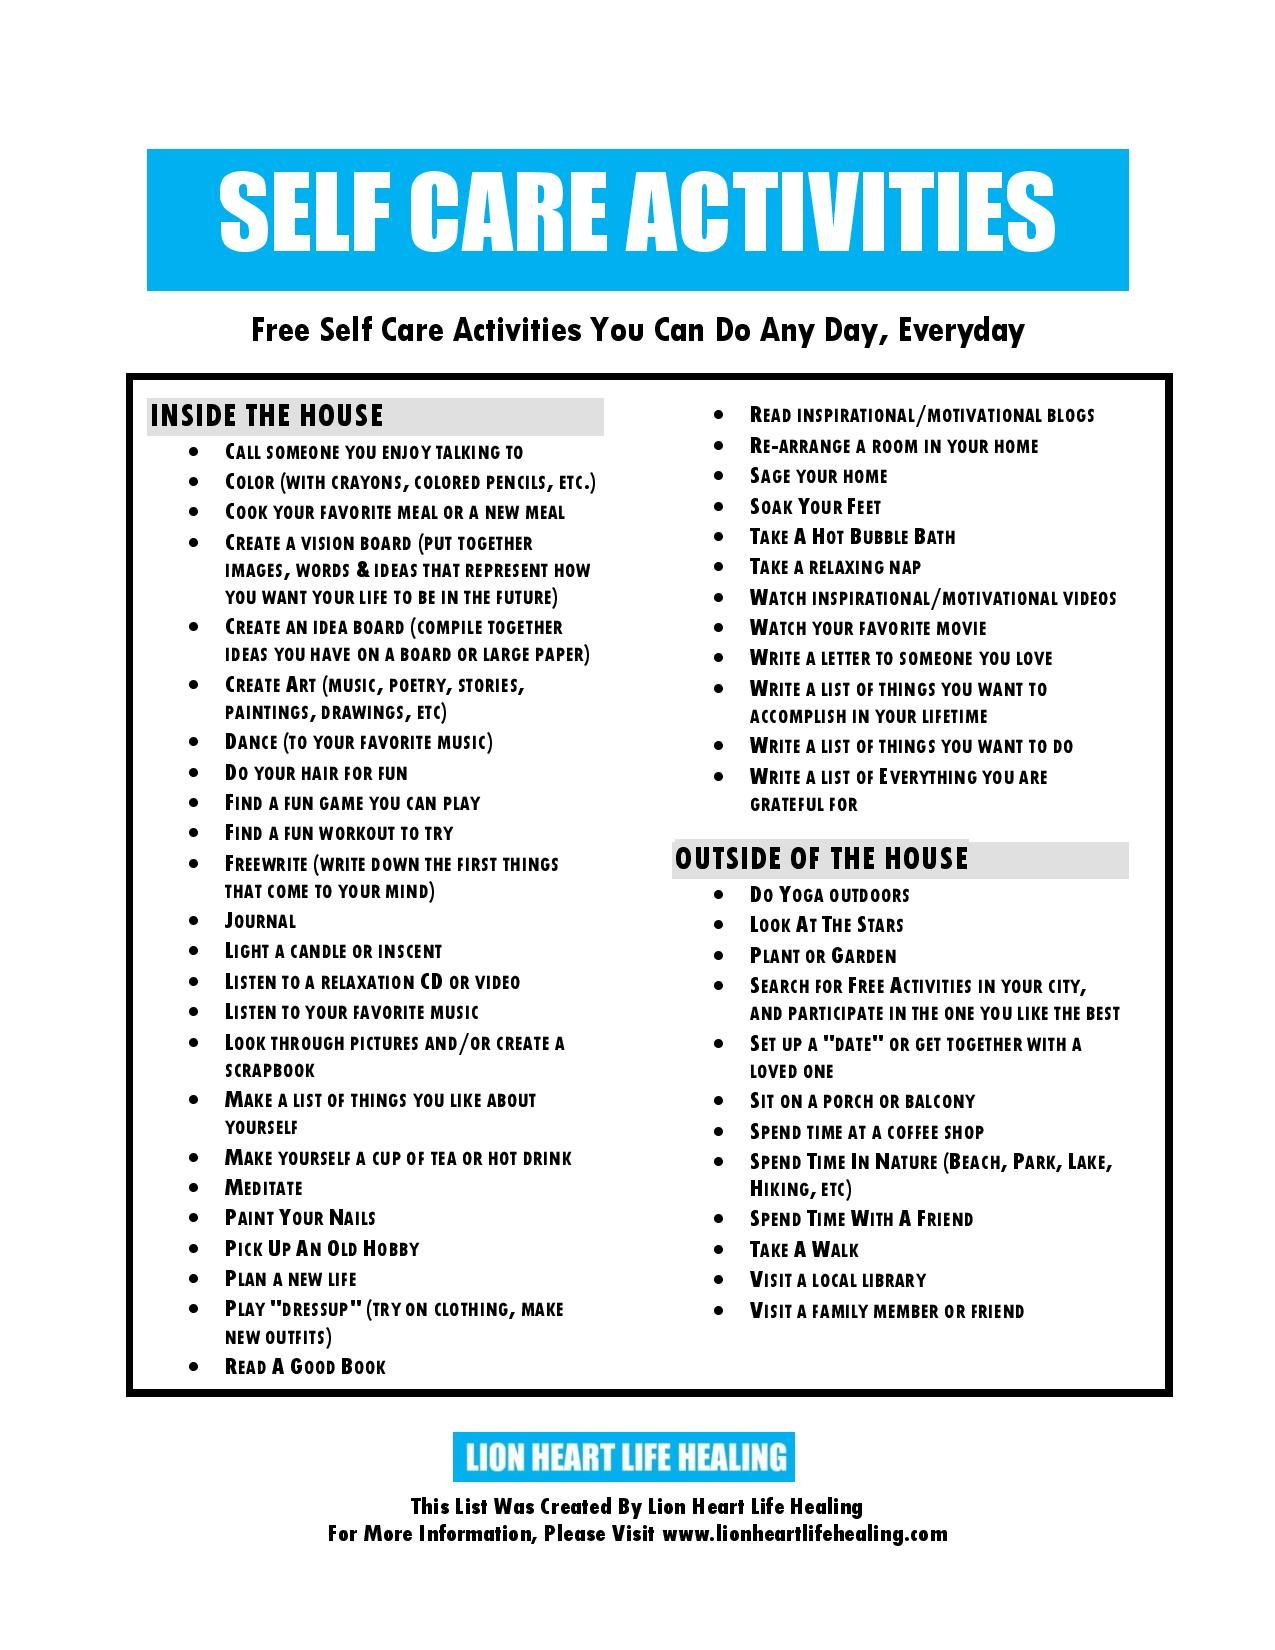 Worksheets Grief Worksheet self care plan printable worksheet worksheets for school signaturebymm